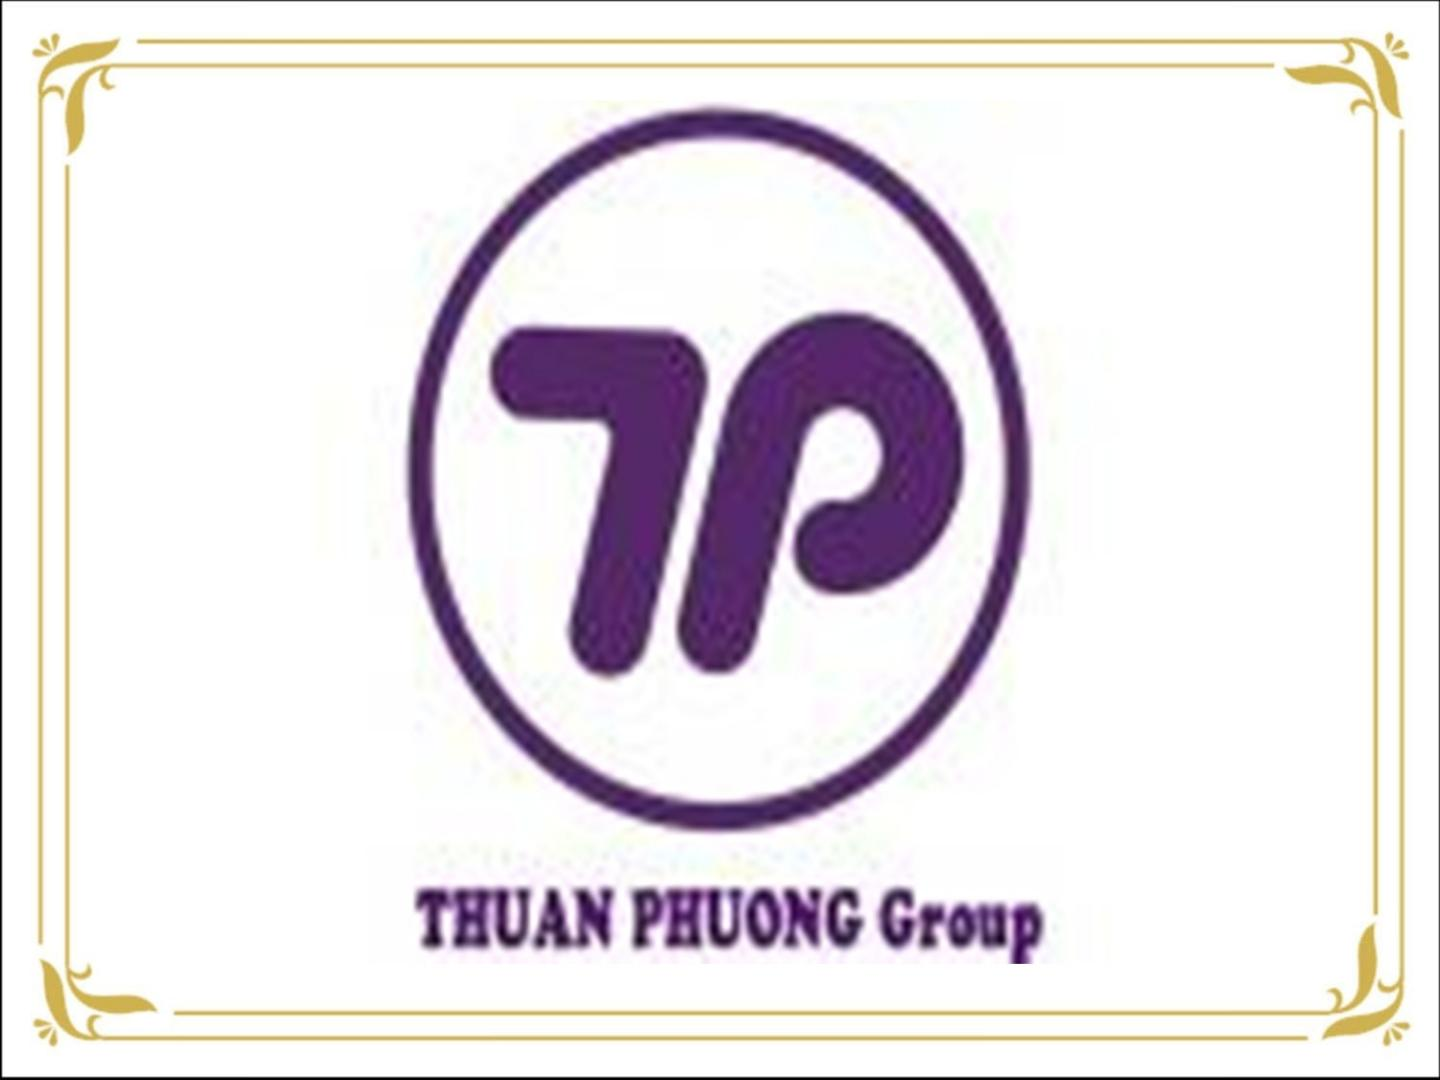 THUAN PHUONG GROUP